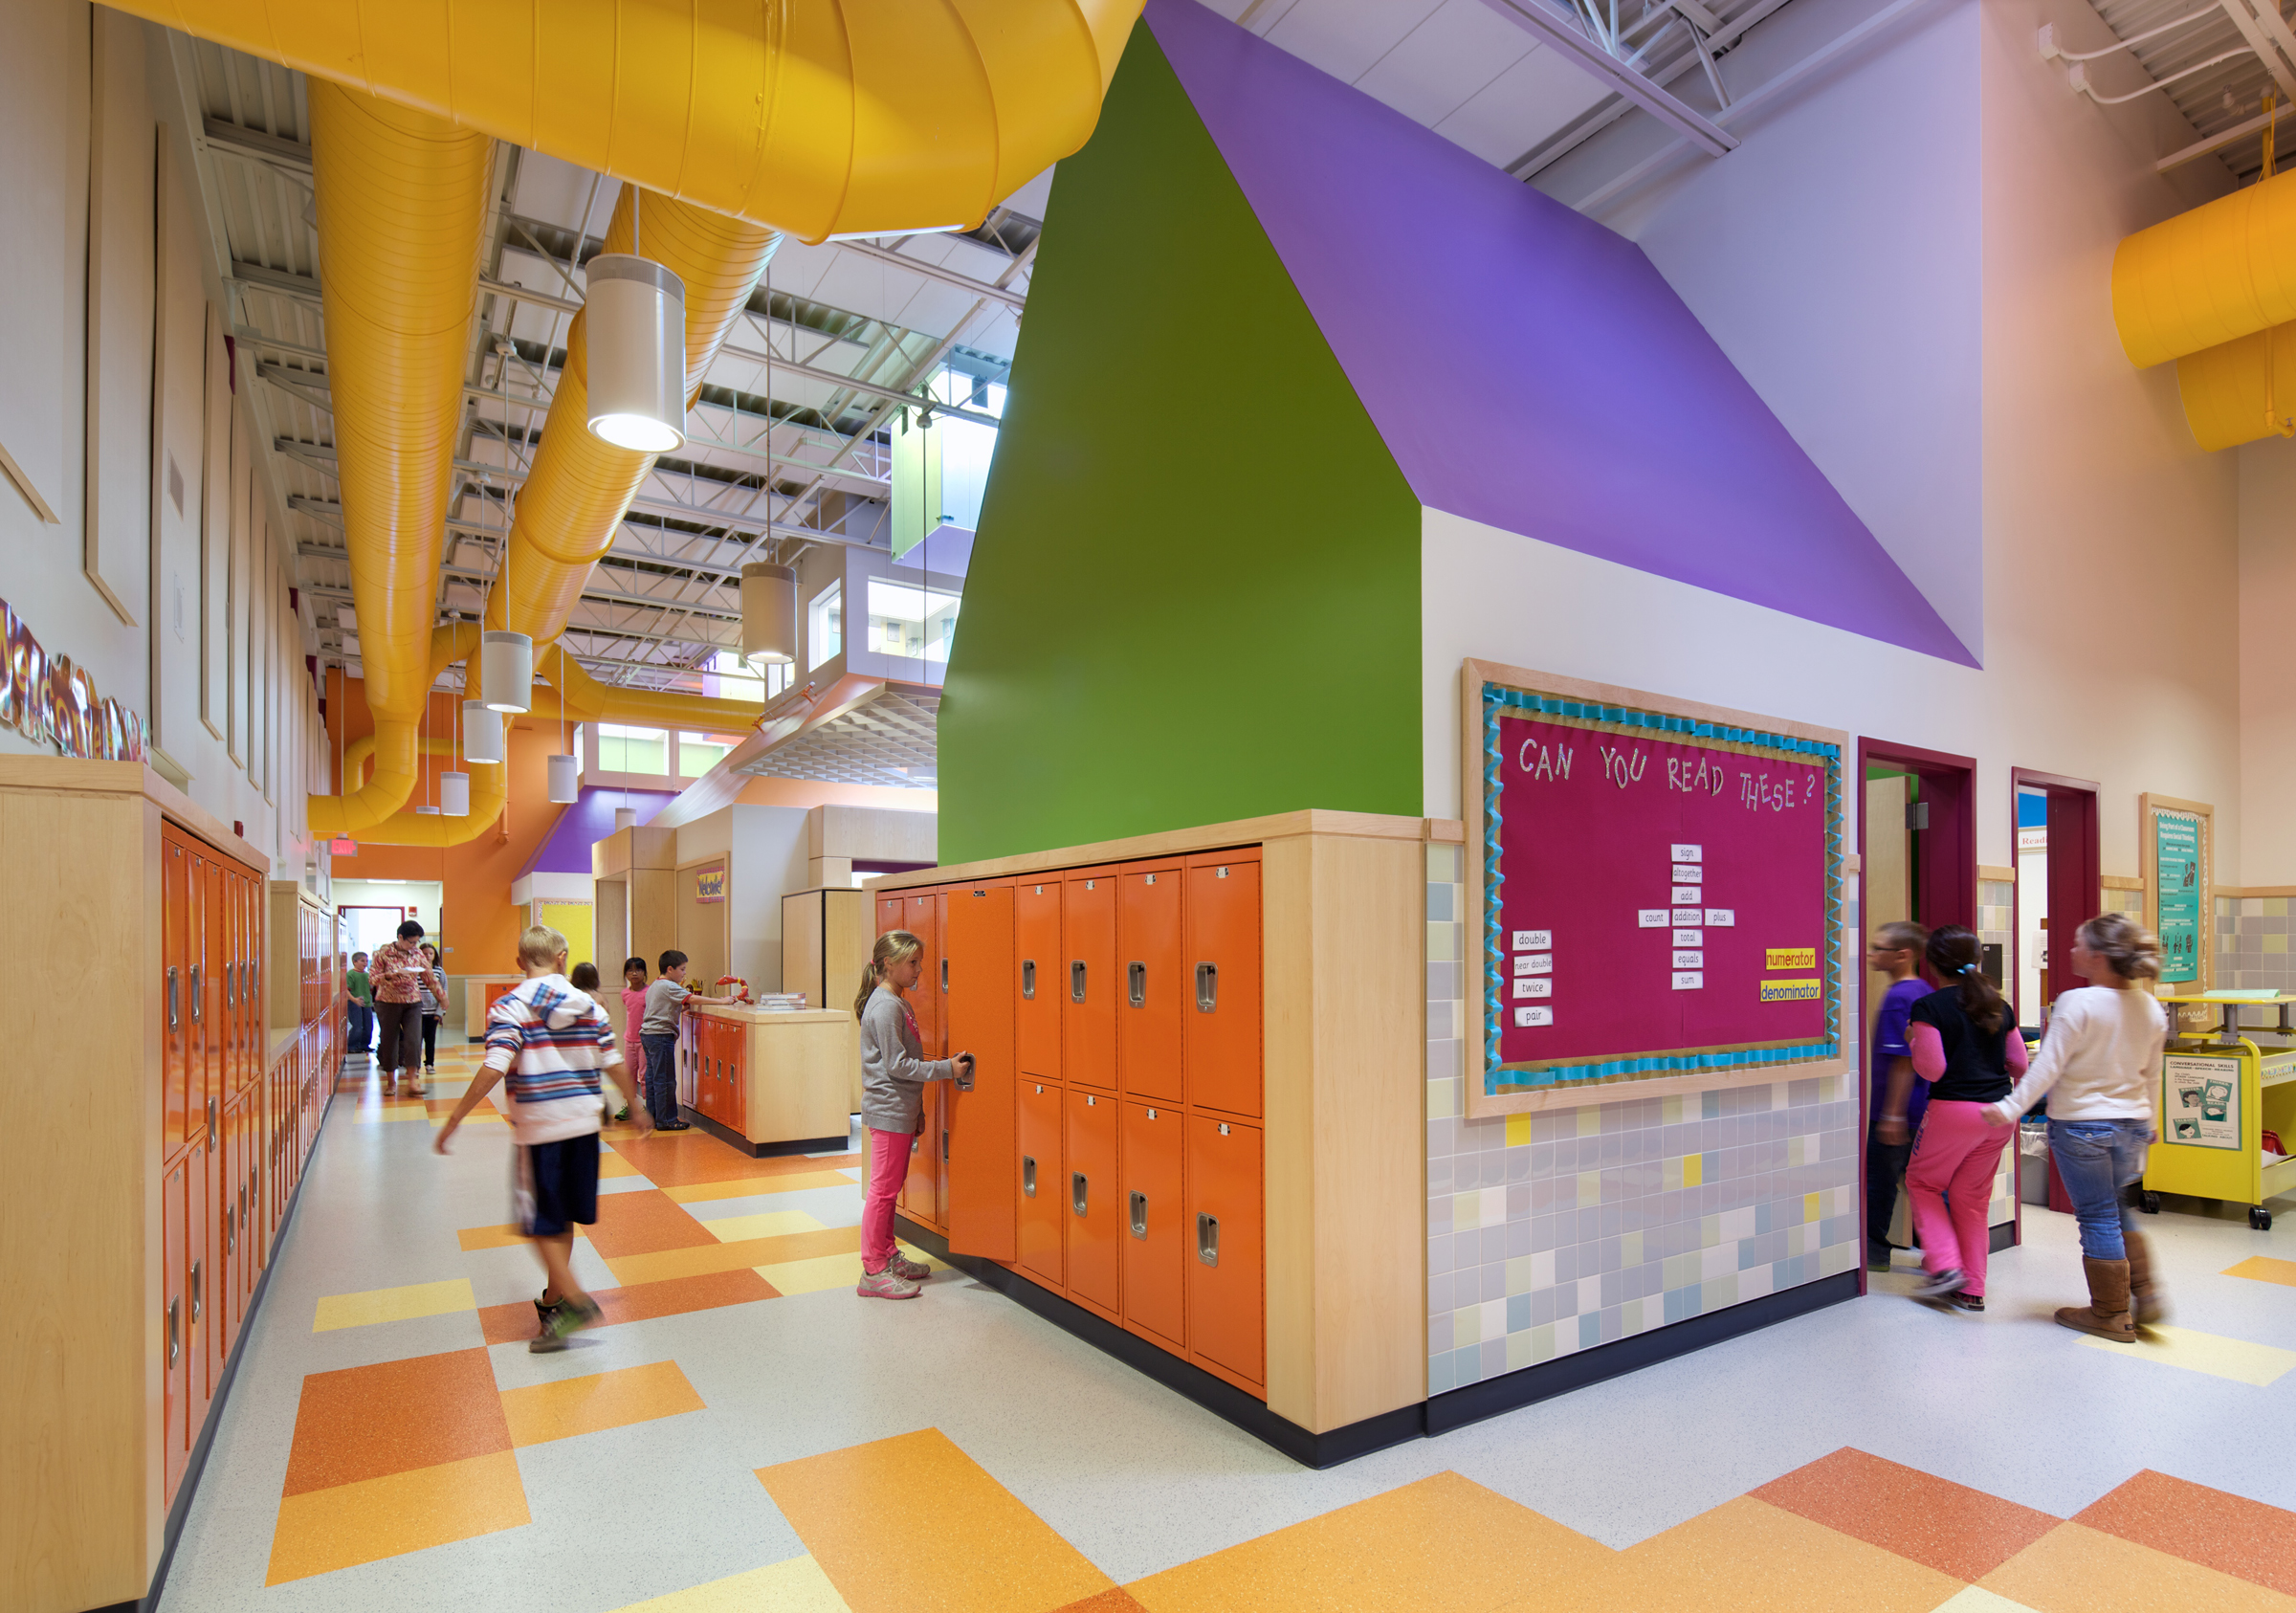 concord schools abbot downing christa mcauliffe mill brook architect magazine concord nh